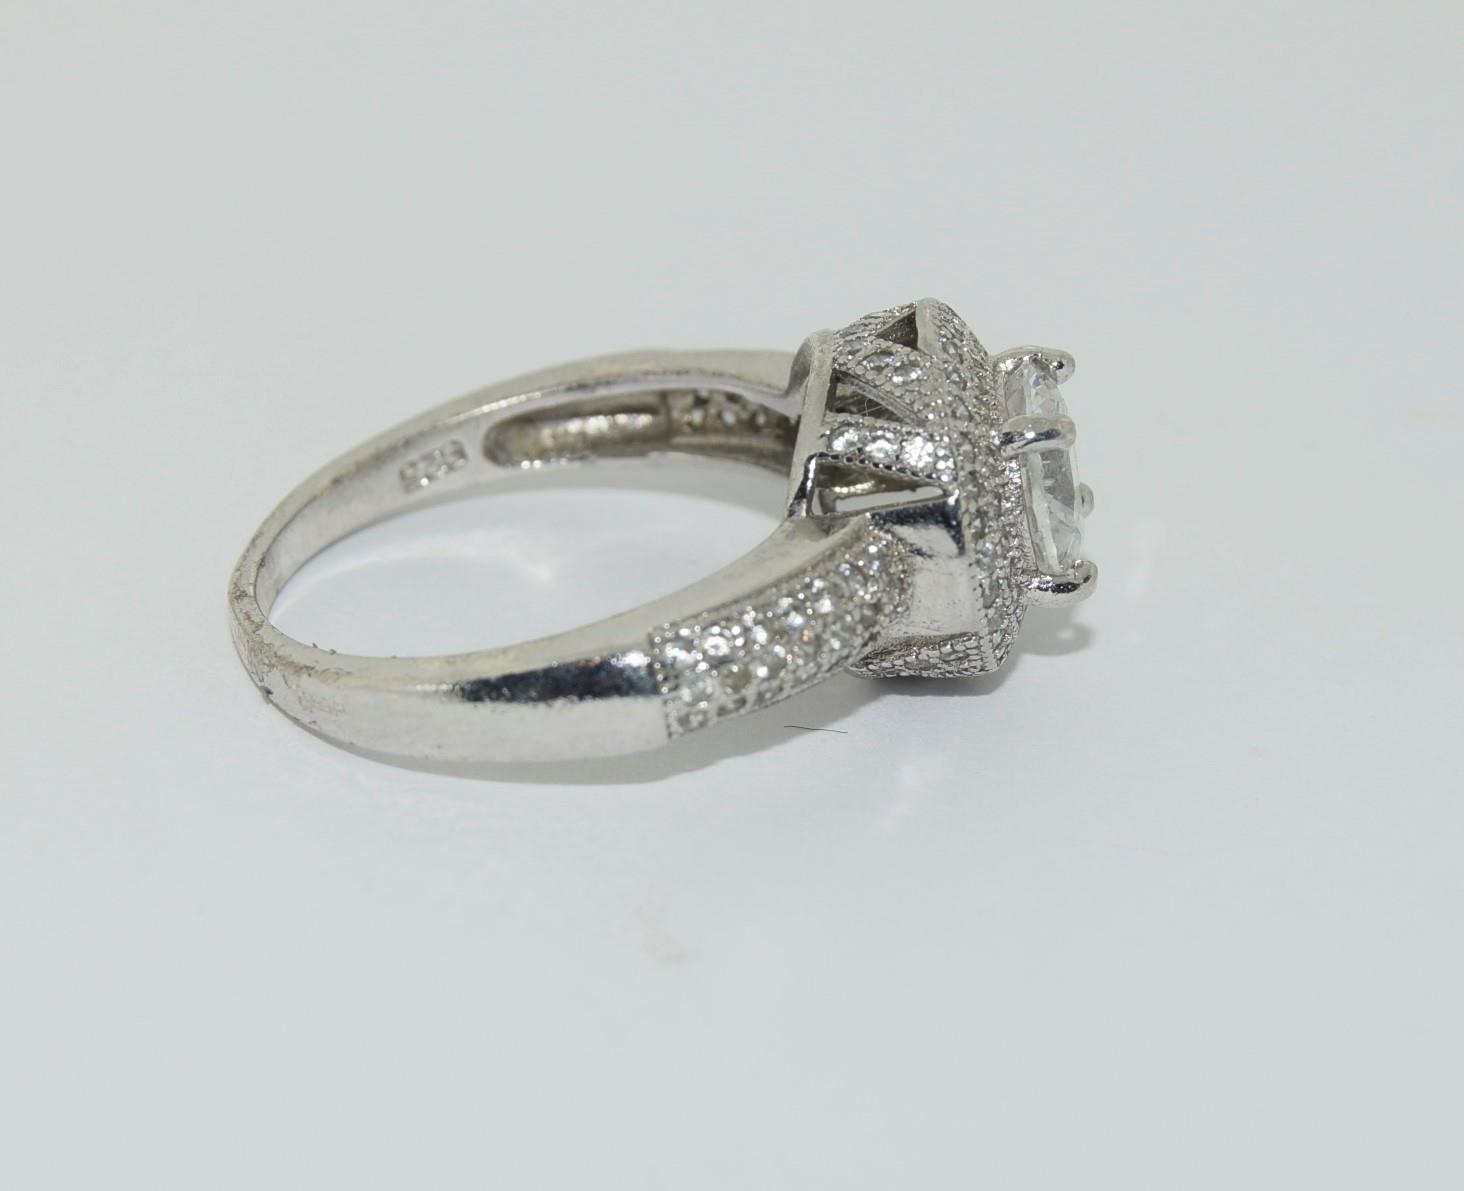 Silver ladies ring in the Halo style. Size P. - Image 2 of 3